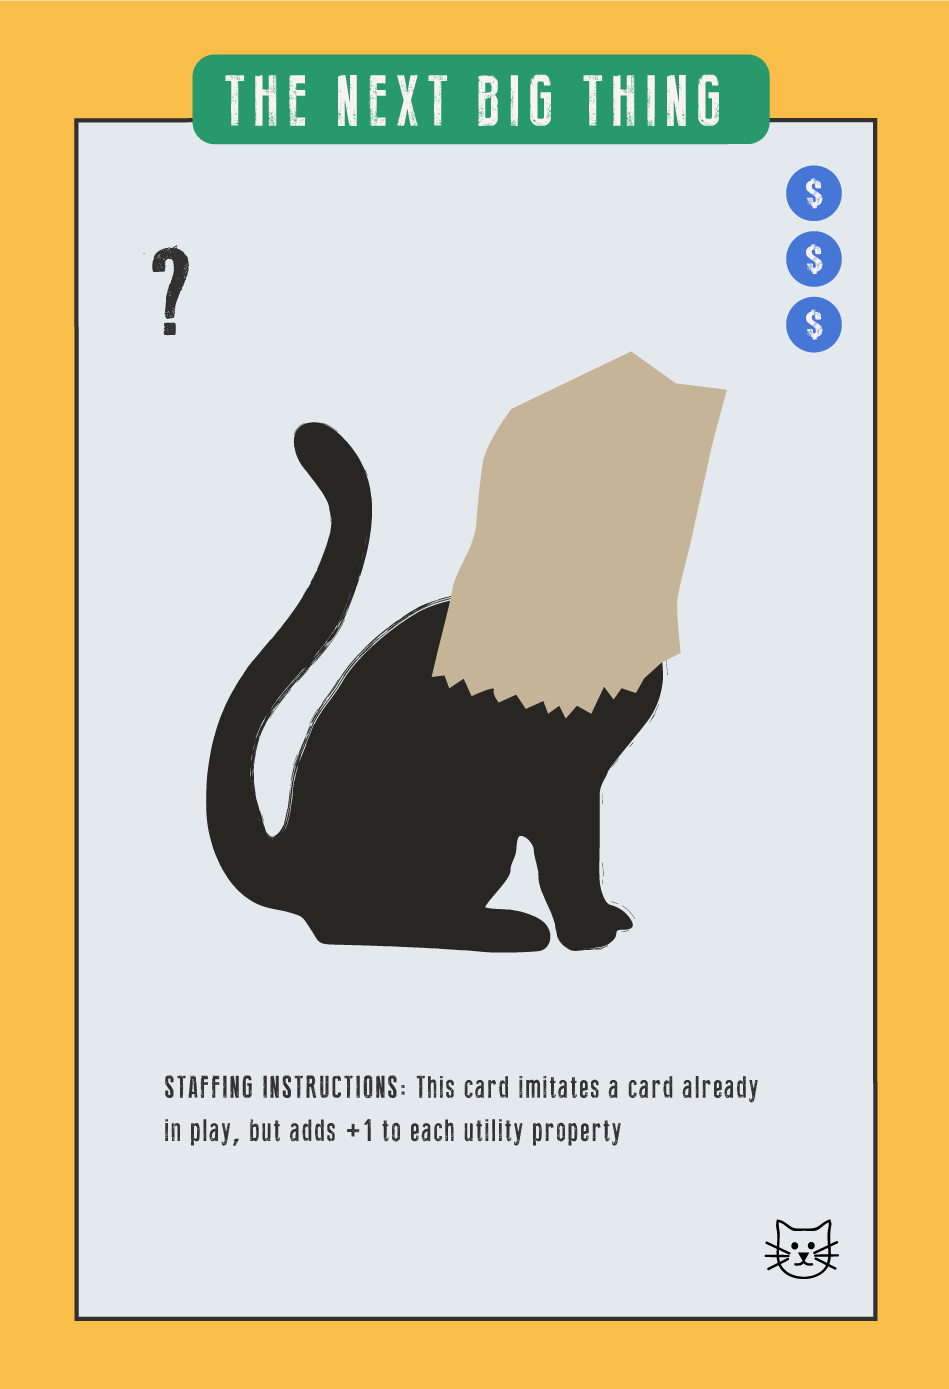 """The Next Big Thing CAT card, it represents the next big thing; """"Staffing instructions: This card imitates a card already in play, bud adds +1 to each utility property."""""""